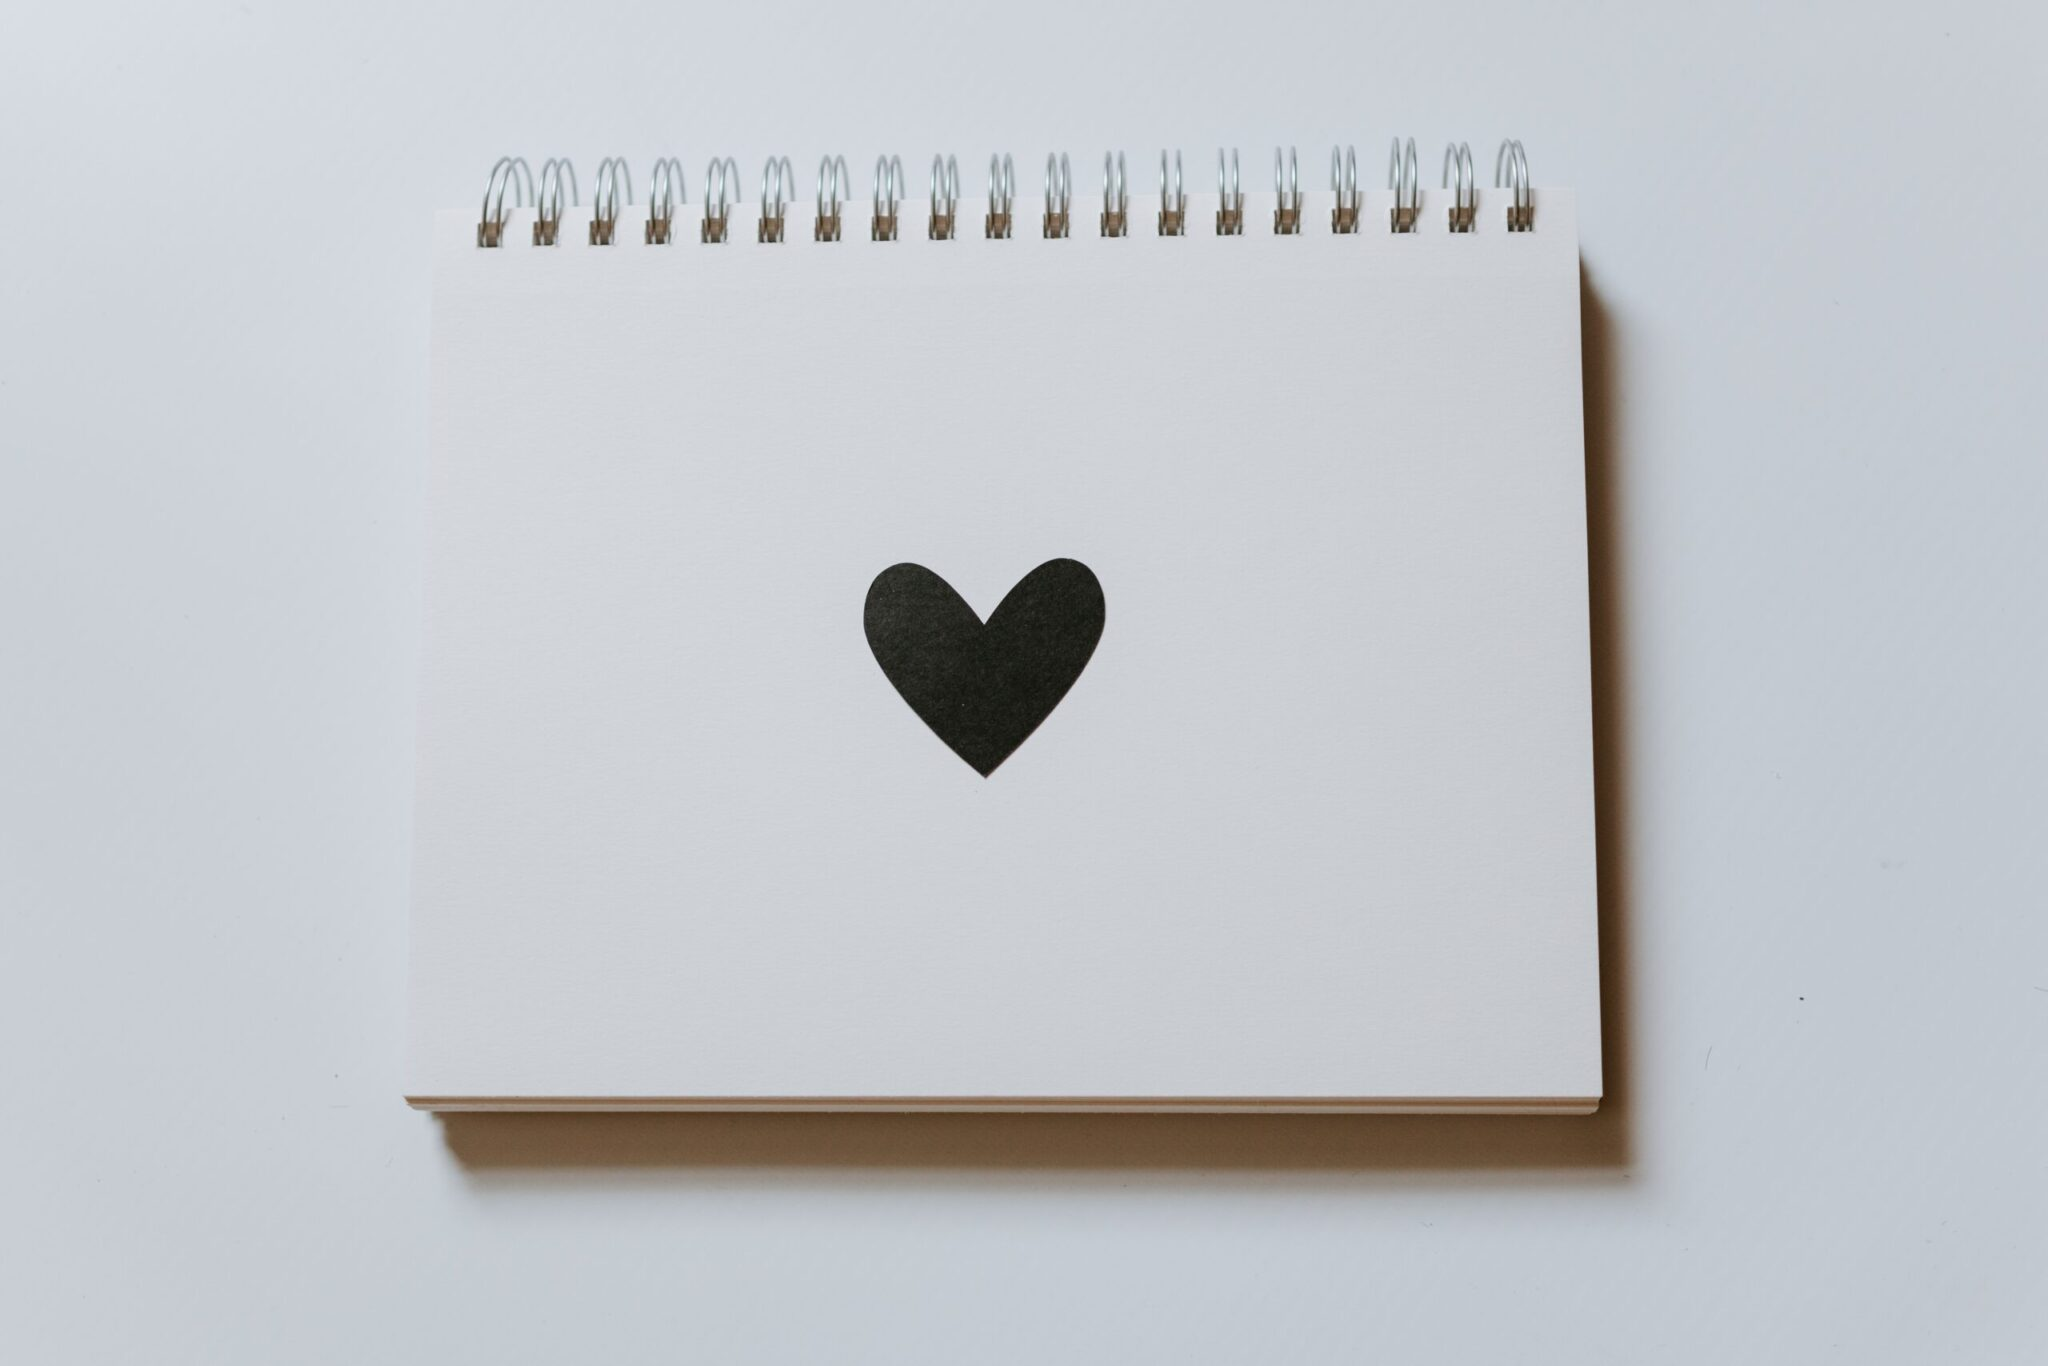 A notebook with a black heart on the cover